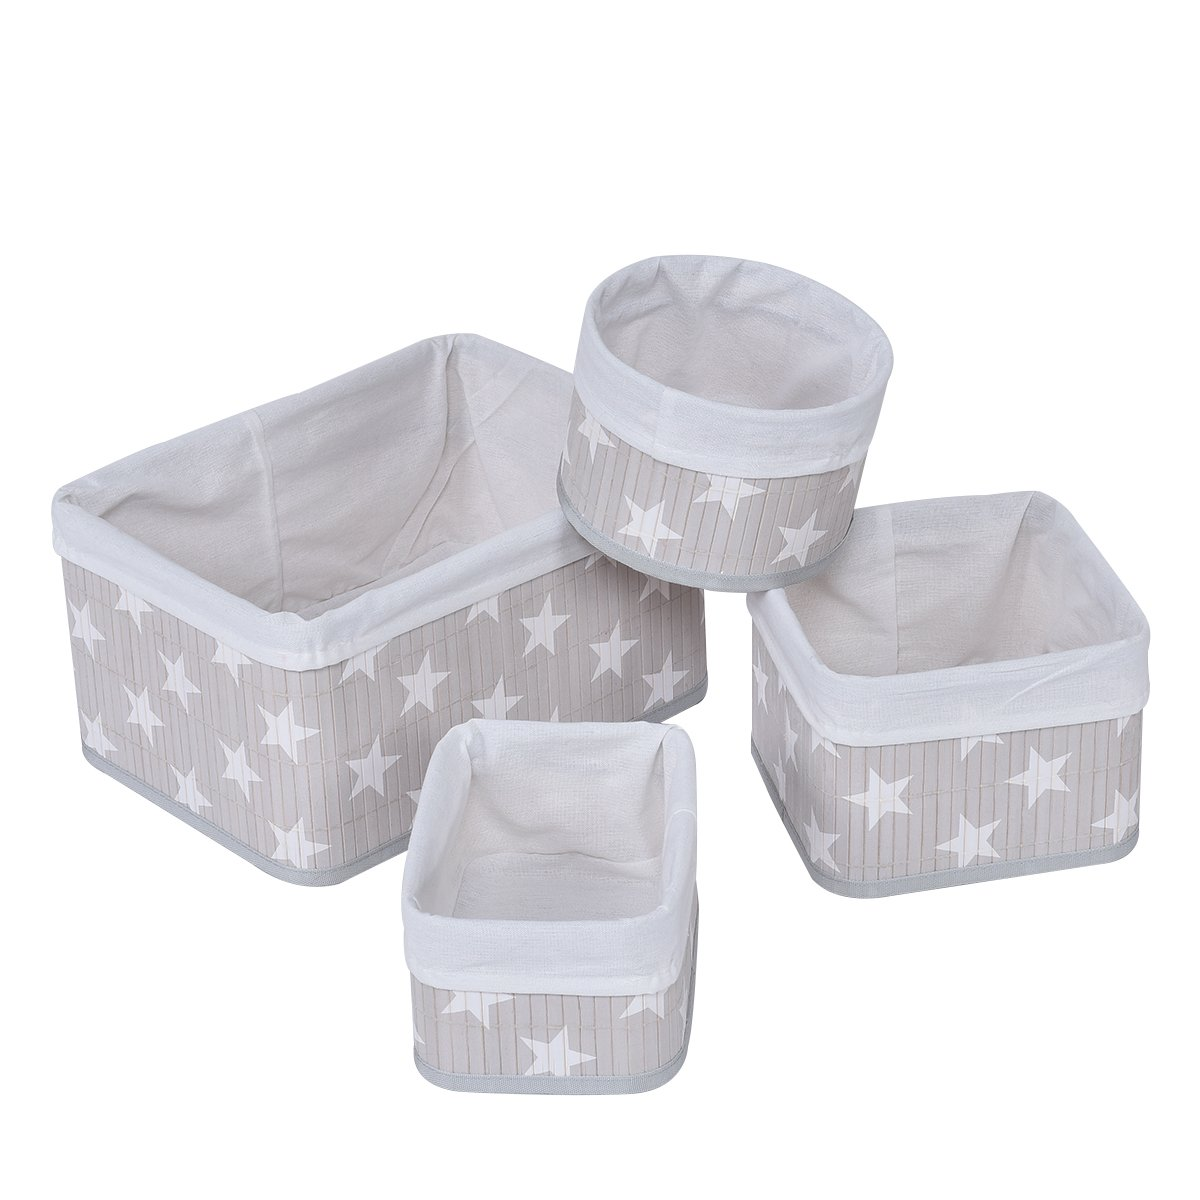 Giantex Set Of 4 Baskets Nesting Baskets Storage Bin Organizer Containers, Fabric Lined Bamboo (Star Pattern)